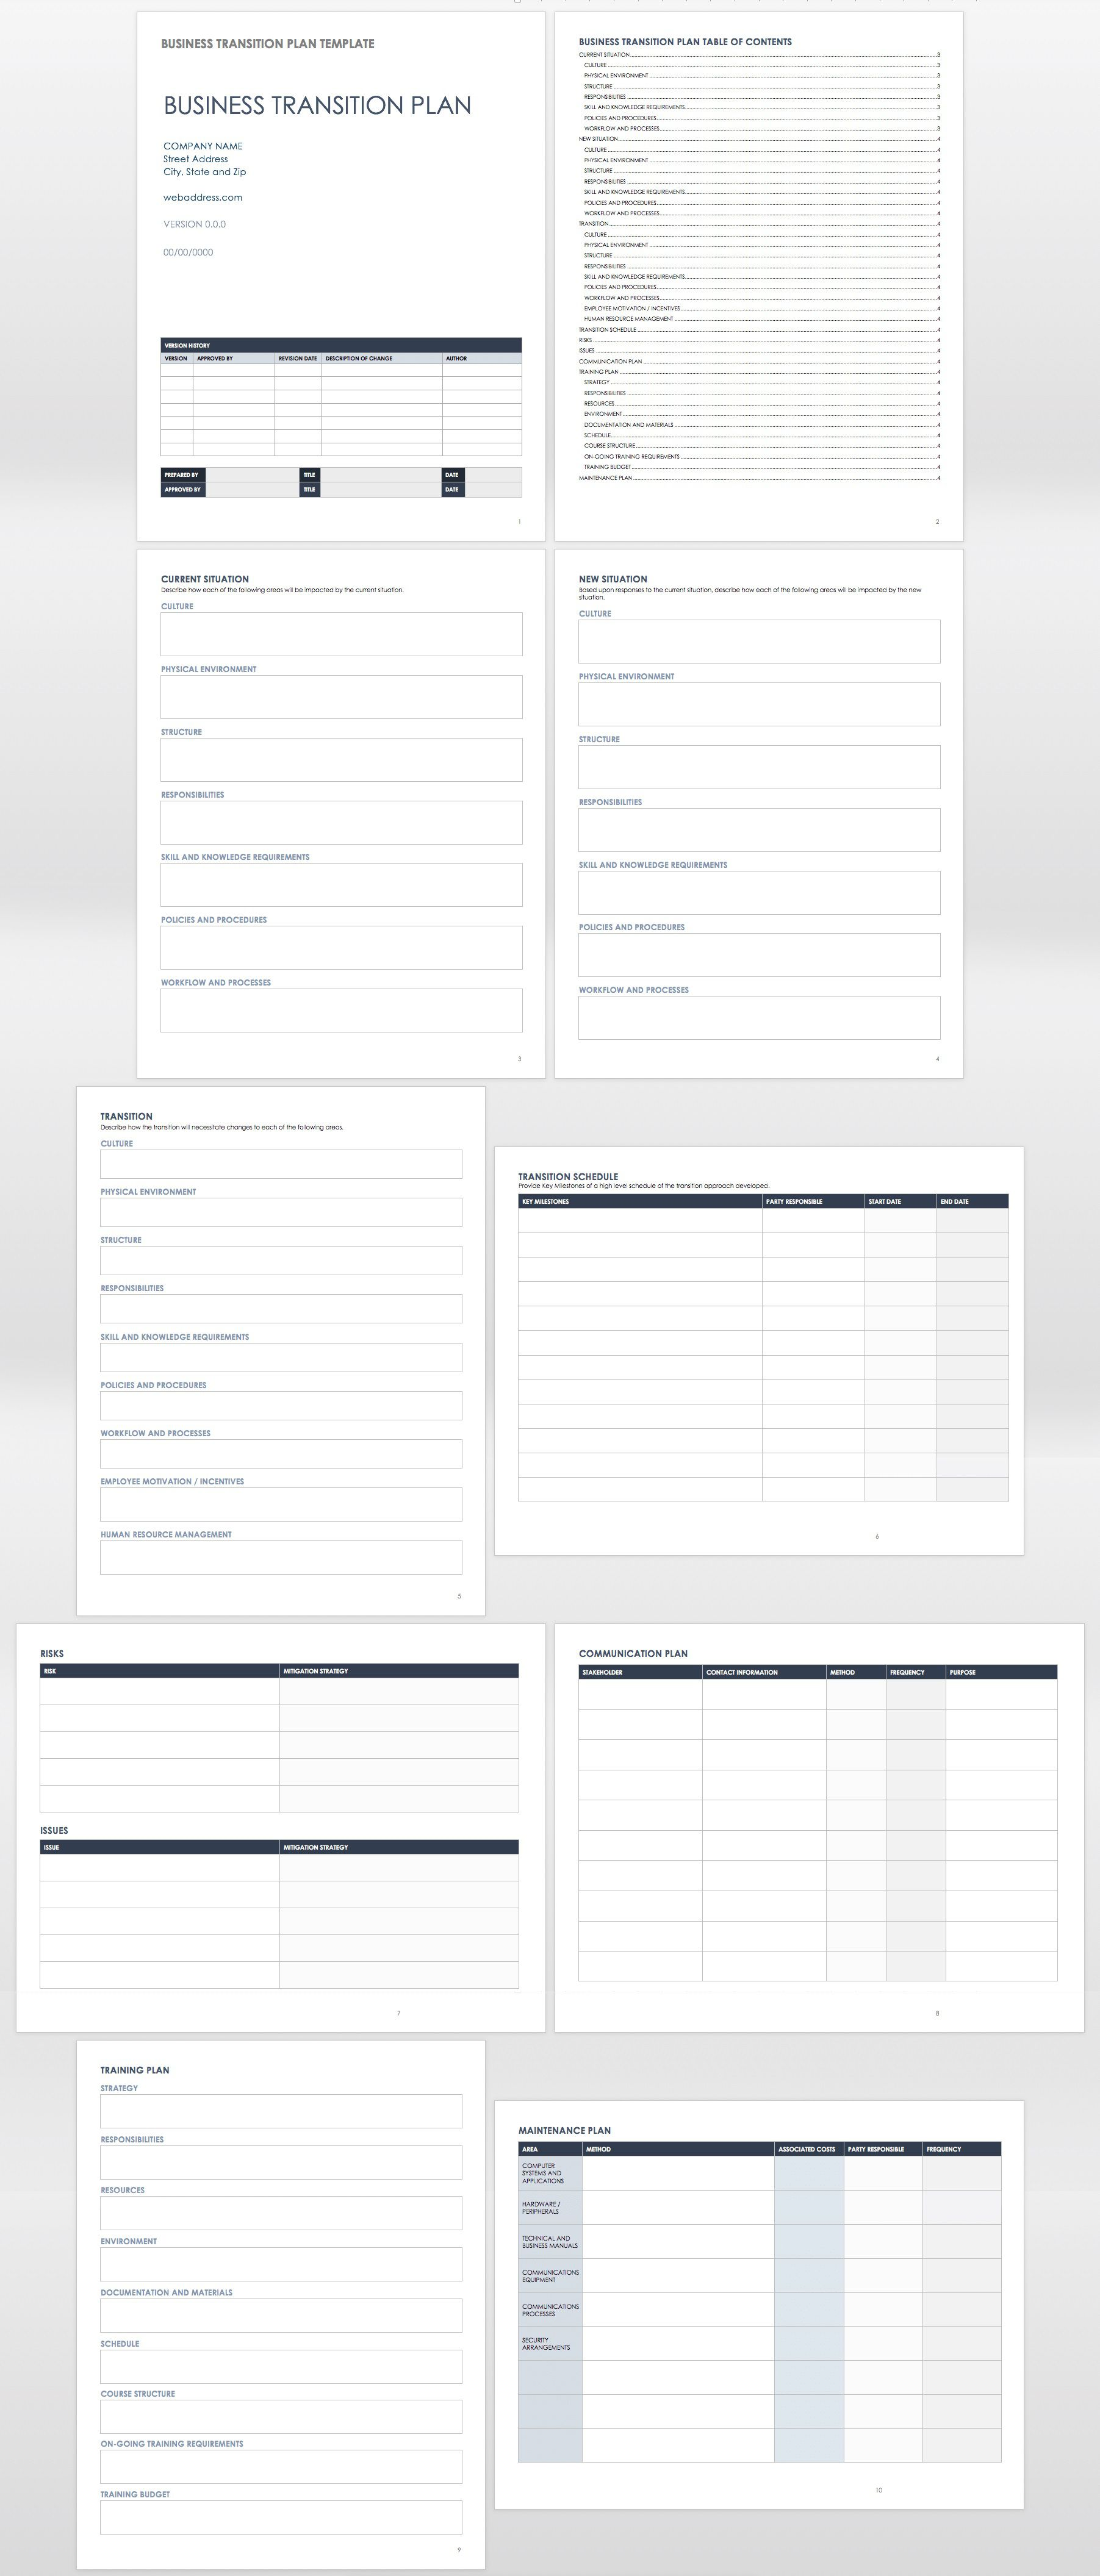 002 Top Employee Transition Plan Template Example  For Leaving Job Excel Word InternalFull